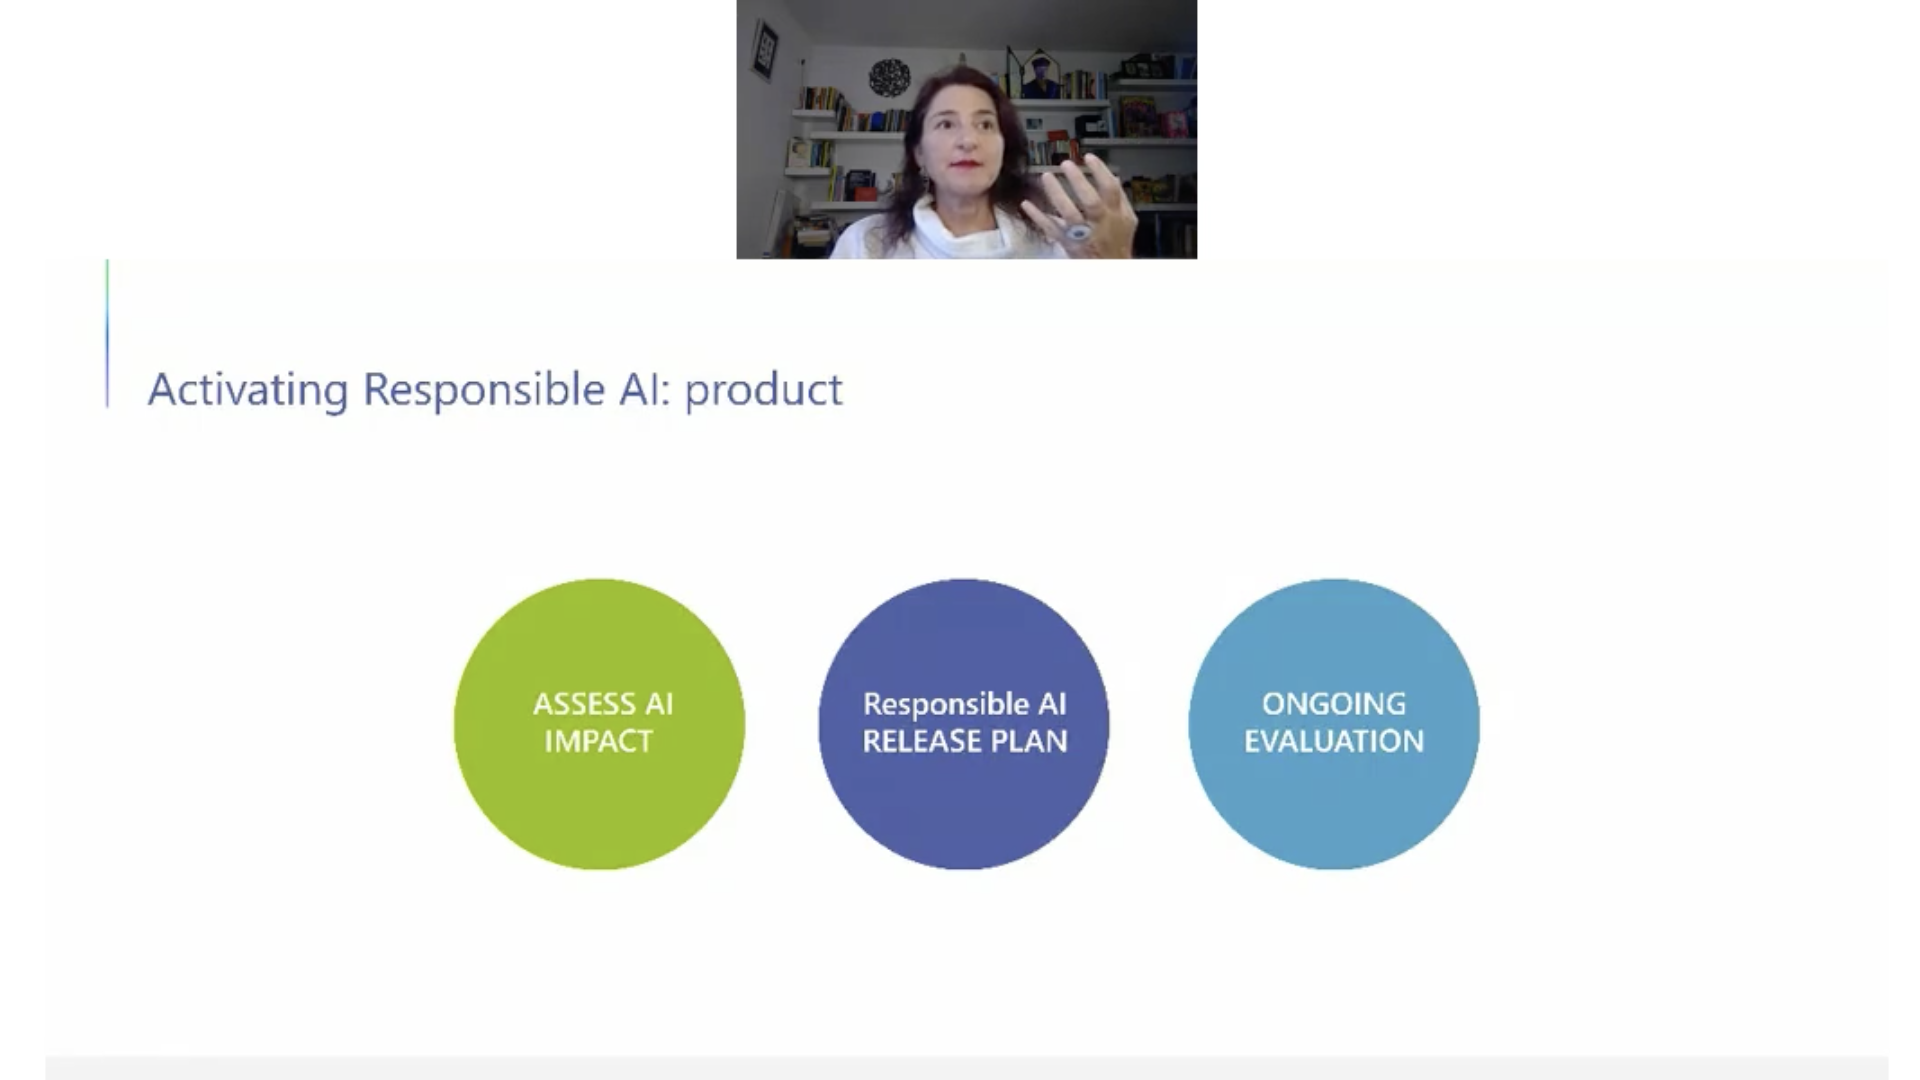 Ruth Kikin-Gil appears above a slide on a video meeting. Title on screen: Activating responsible AI: product. Three circles in green, navy, and aqua. Text in green: Assess AI impact. Text in navy: Responsible AI release plan. Text in aqua: Ongoing evaluation.